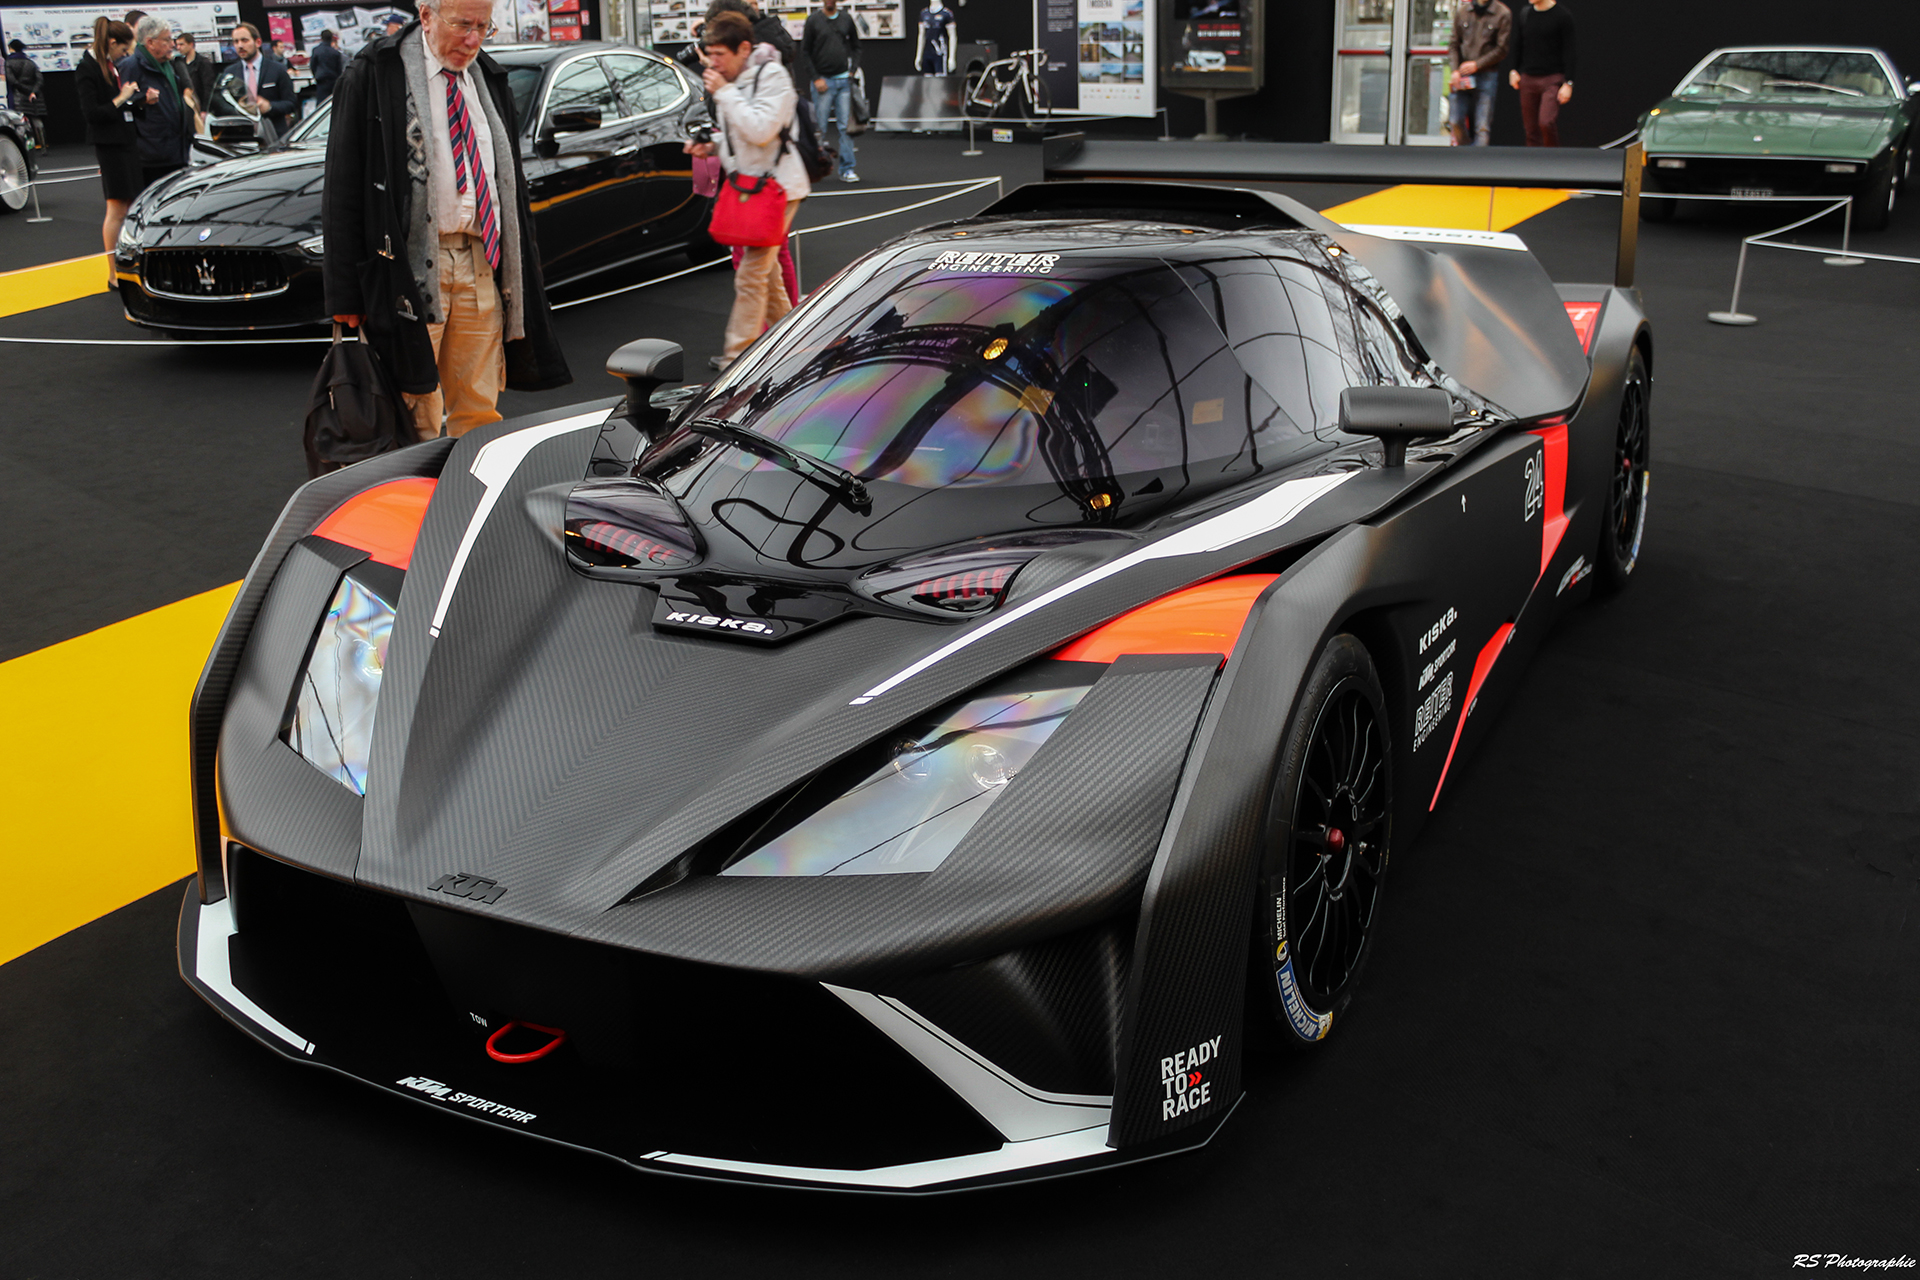 KTM X-Bow GT4 - Exposition Concept cars 2016 - Arnaud Demasier RS Photographie